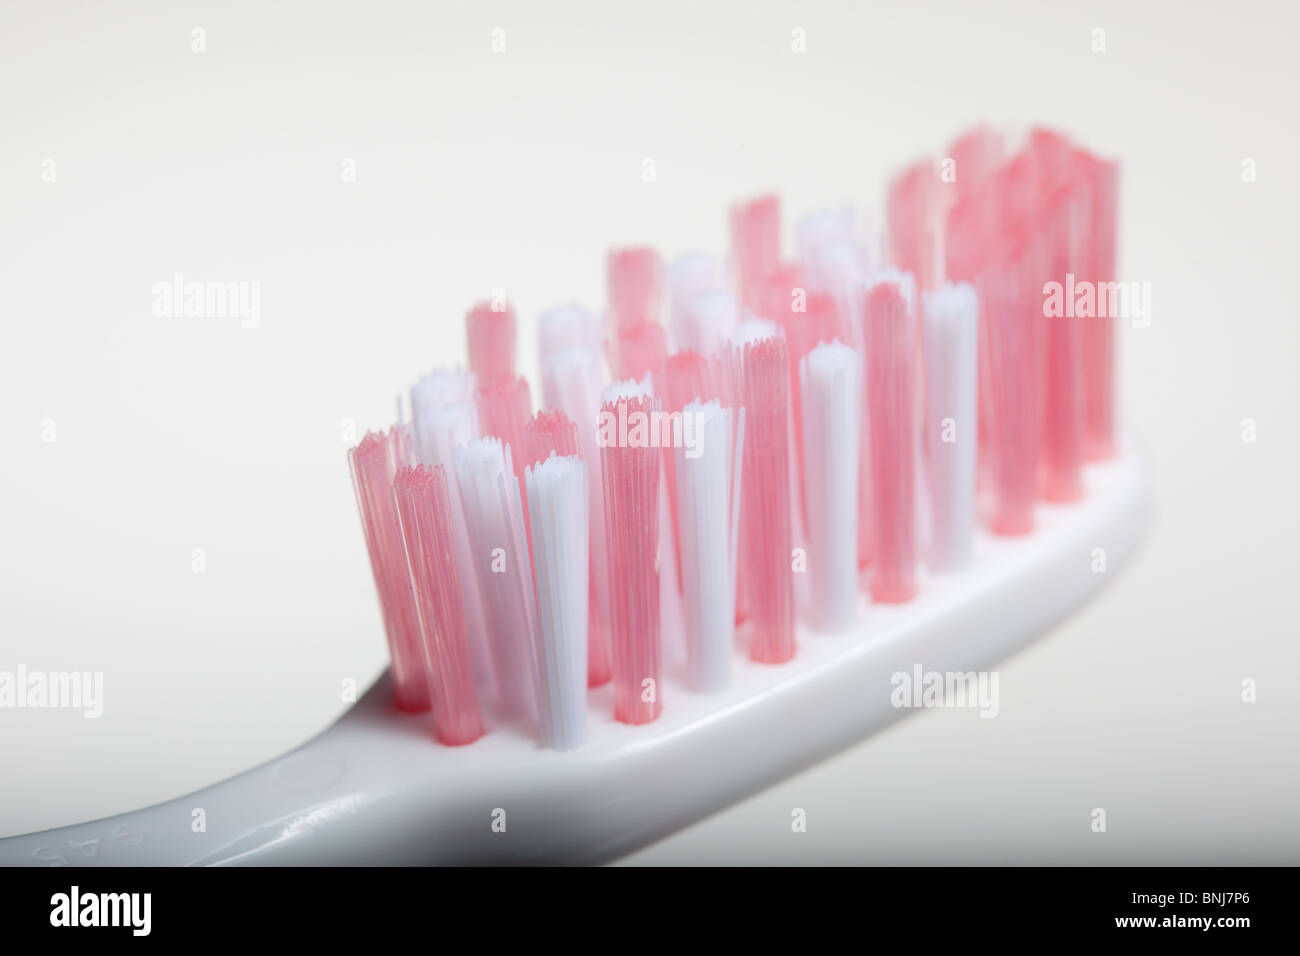 Close-up Macro shot of a toothbrush head - Stock Image